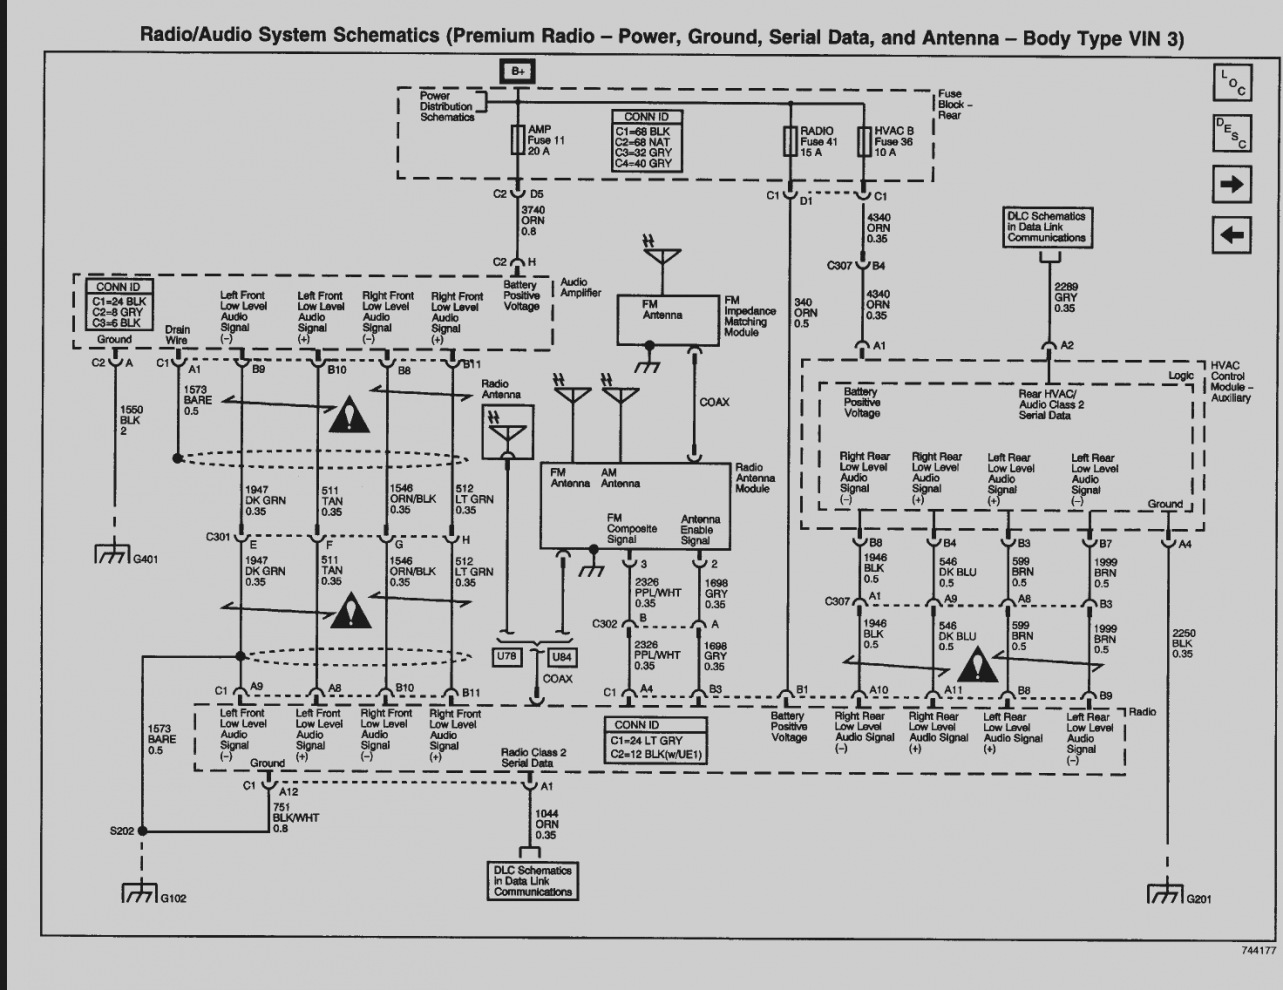 2001 gmc 2500hd wiring diagram 2003 gmc yukon bose radio wiring diagram | free wiring diagram 2005 gmc 2500hd wiring diagram #1